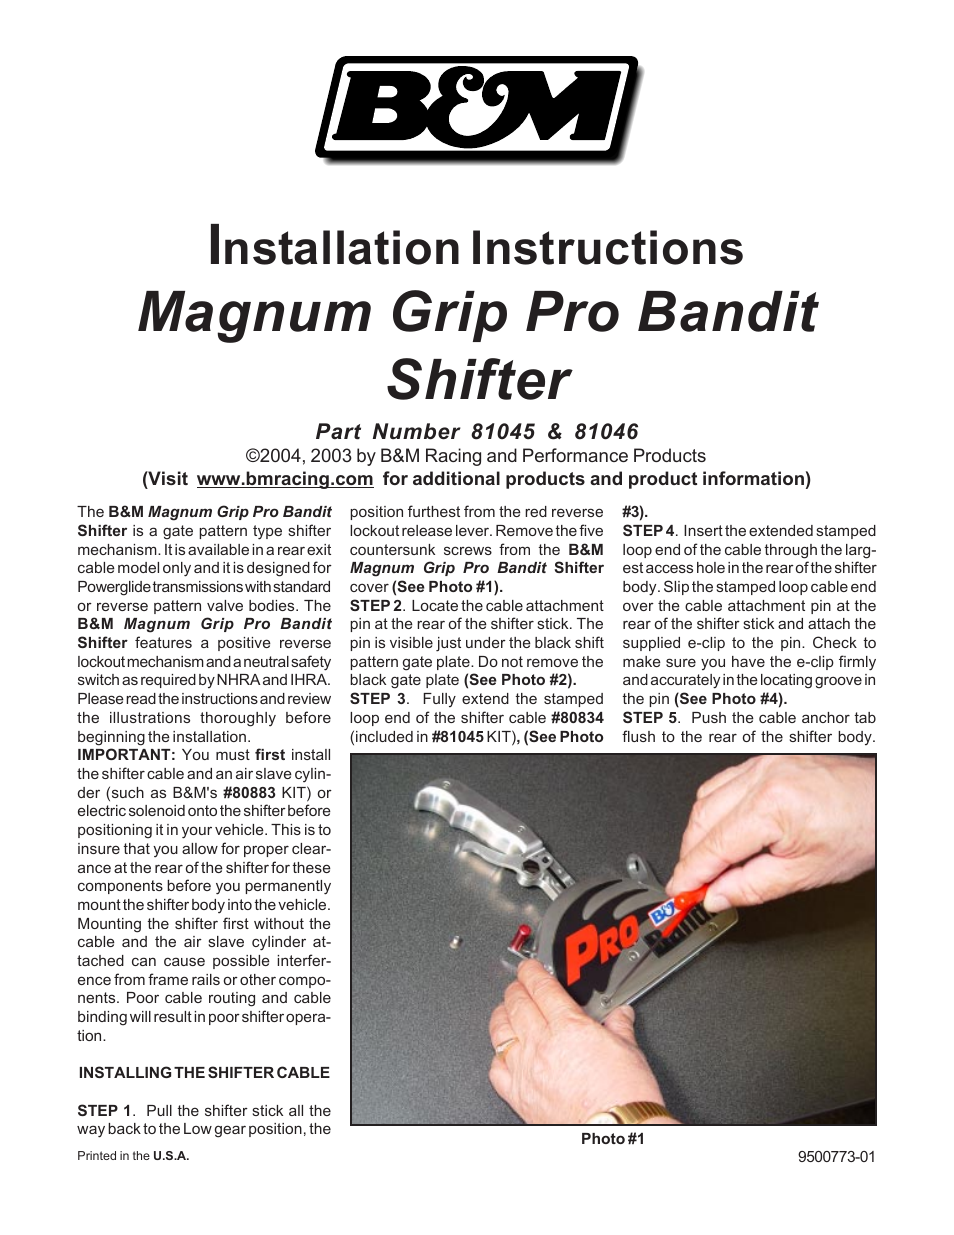 Bm 81111 Automatic Shifter Stealth Pro Bandit Magnum Without